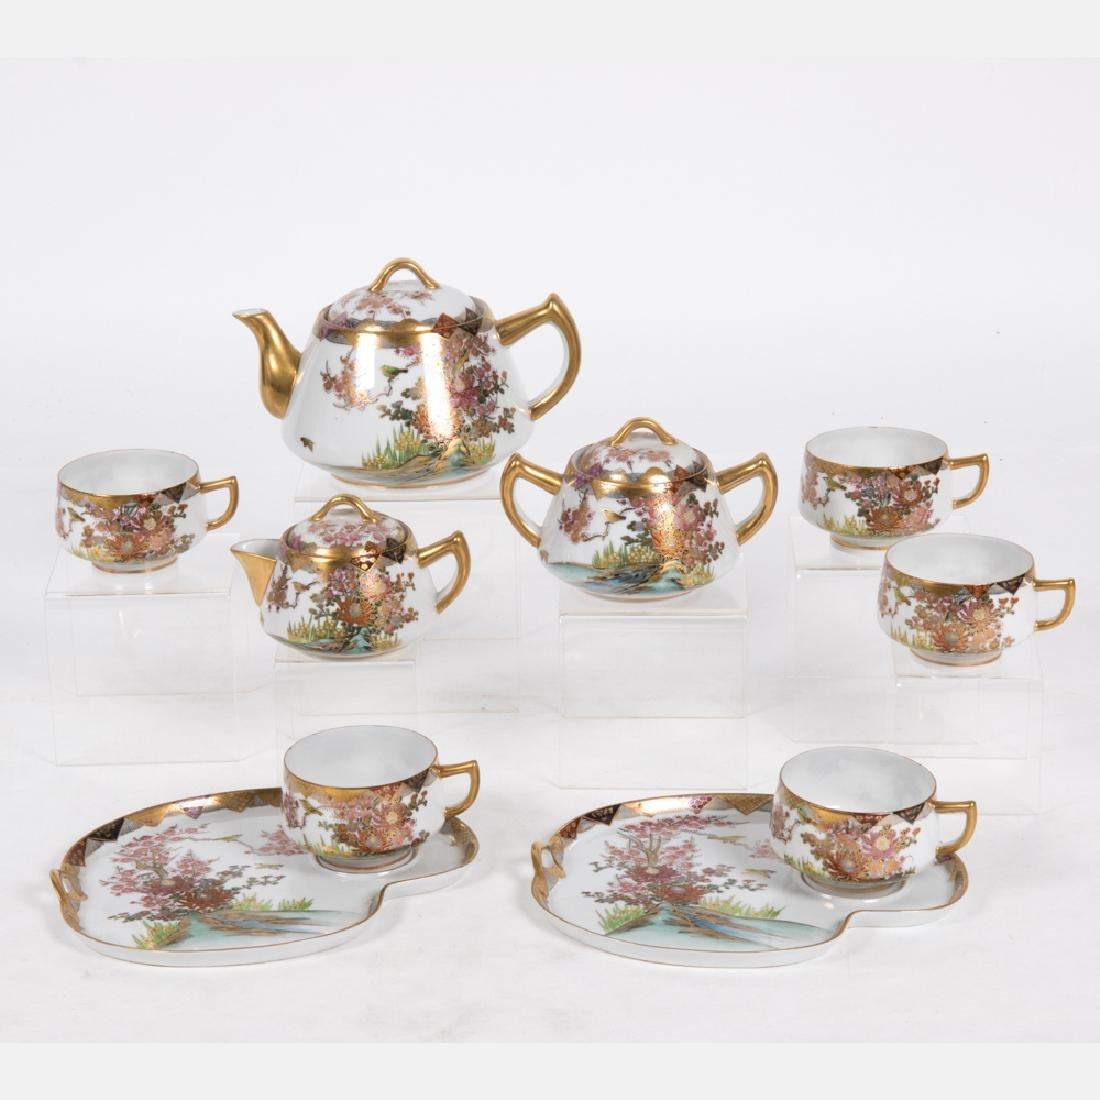 A Partial Japanese Porcelain Satsuma Style Tea Set,